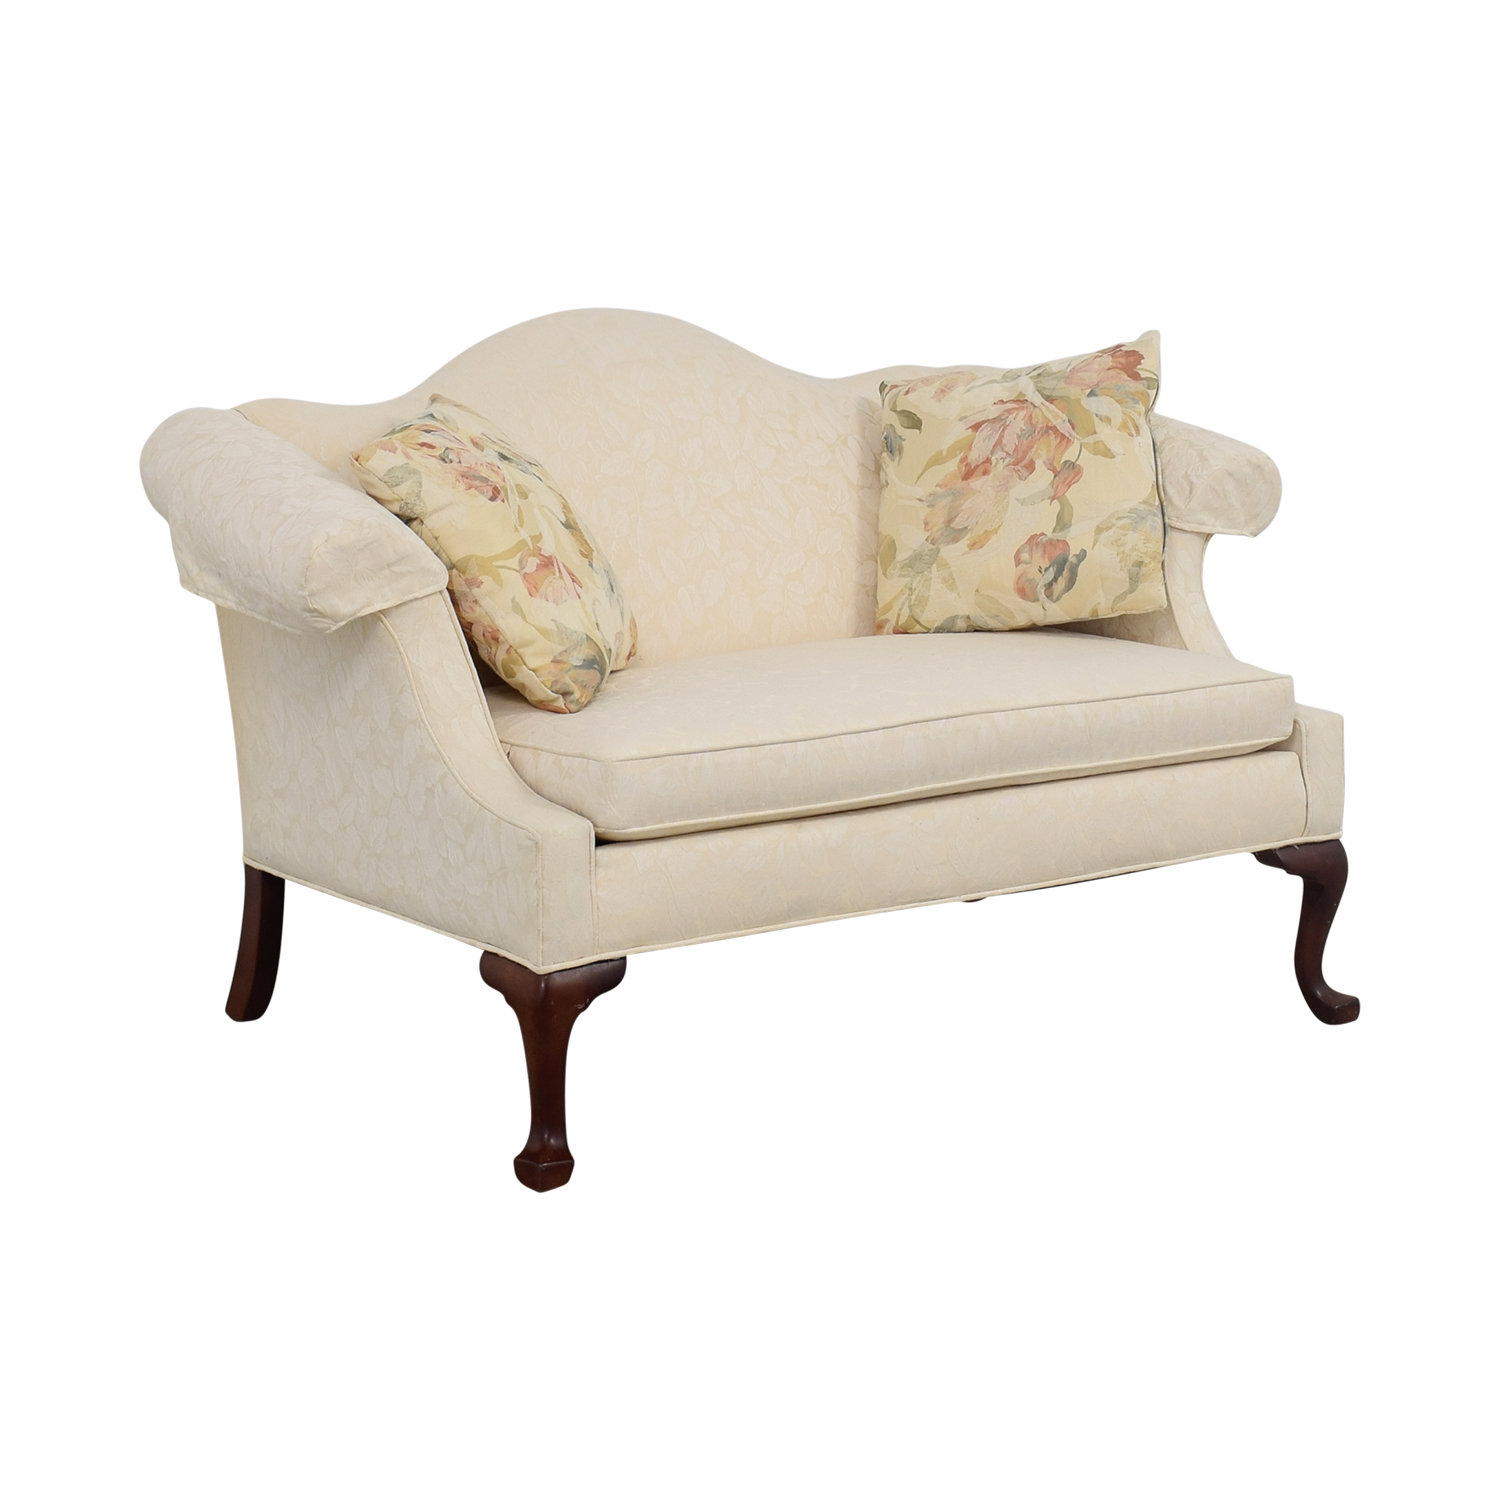 Ethan Allen White Love Seat With Fl Pillows